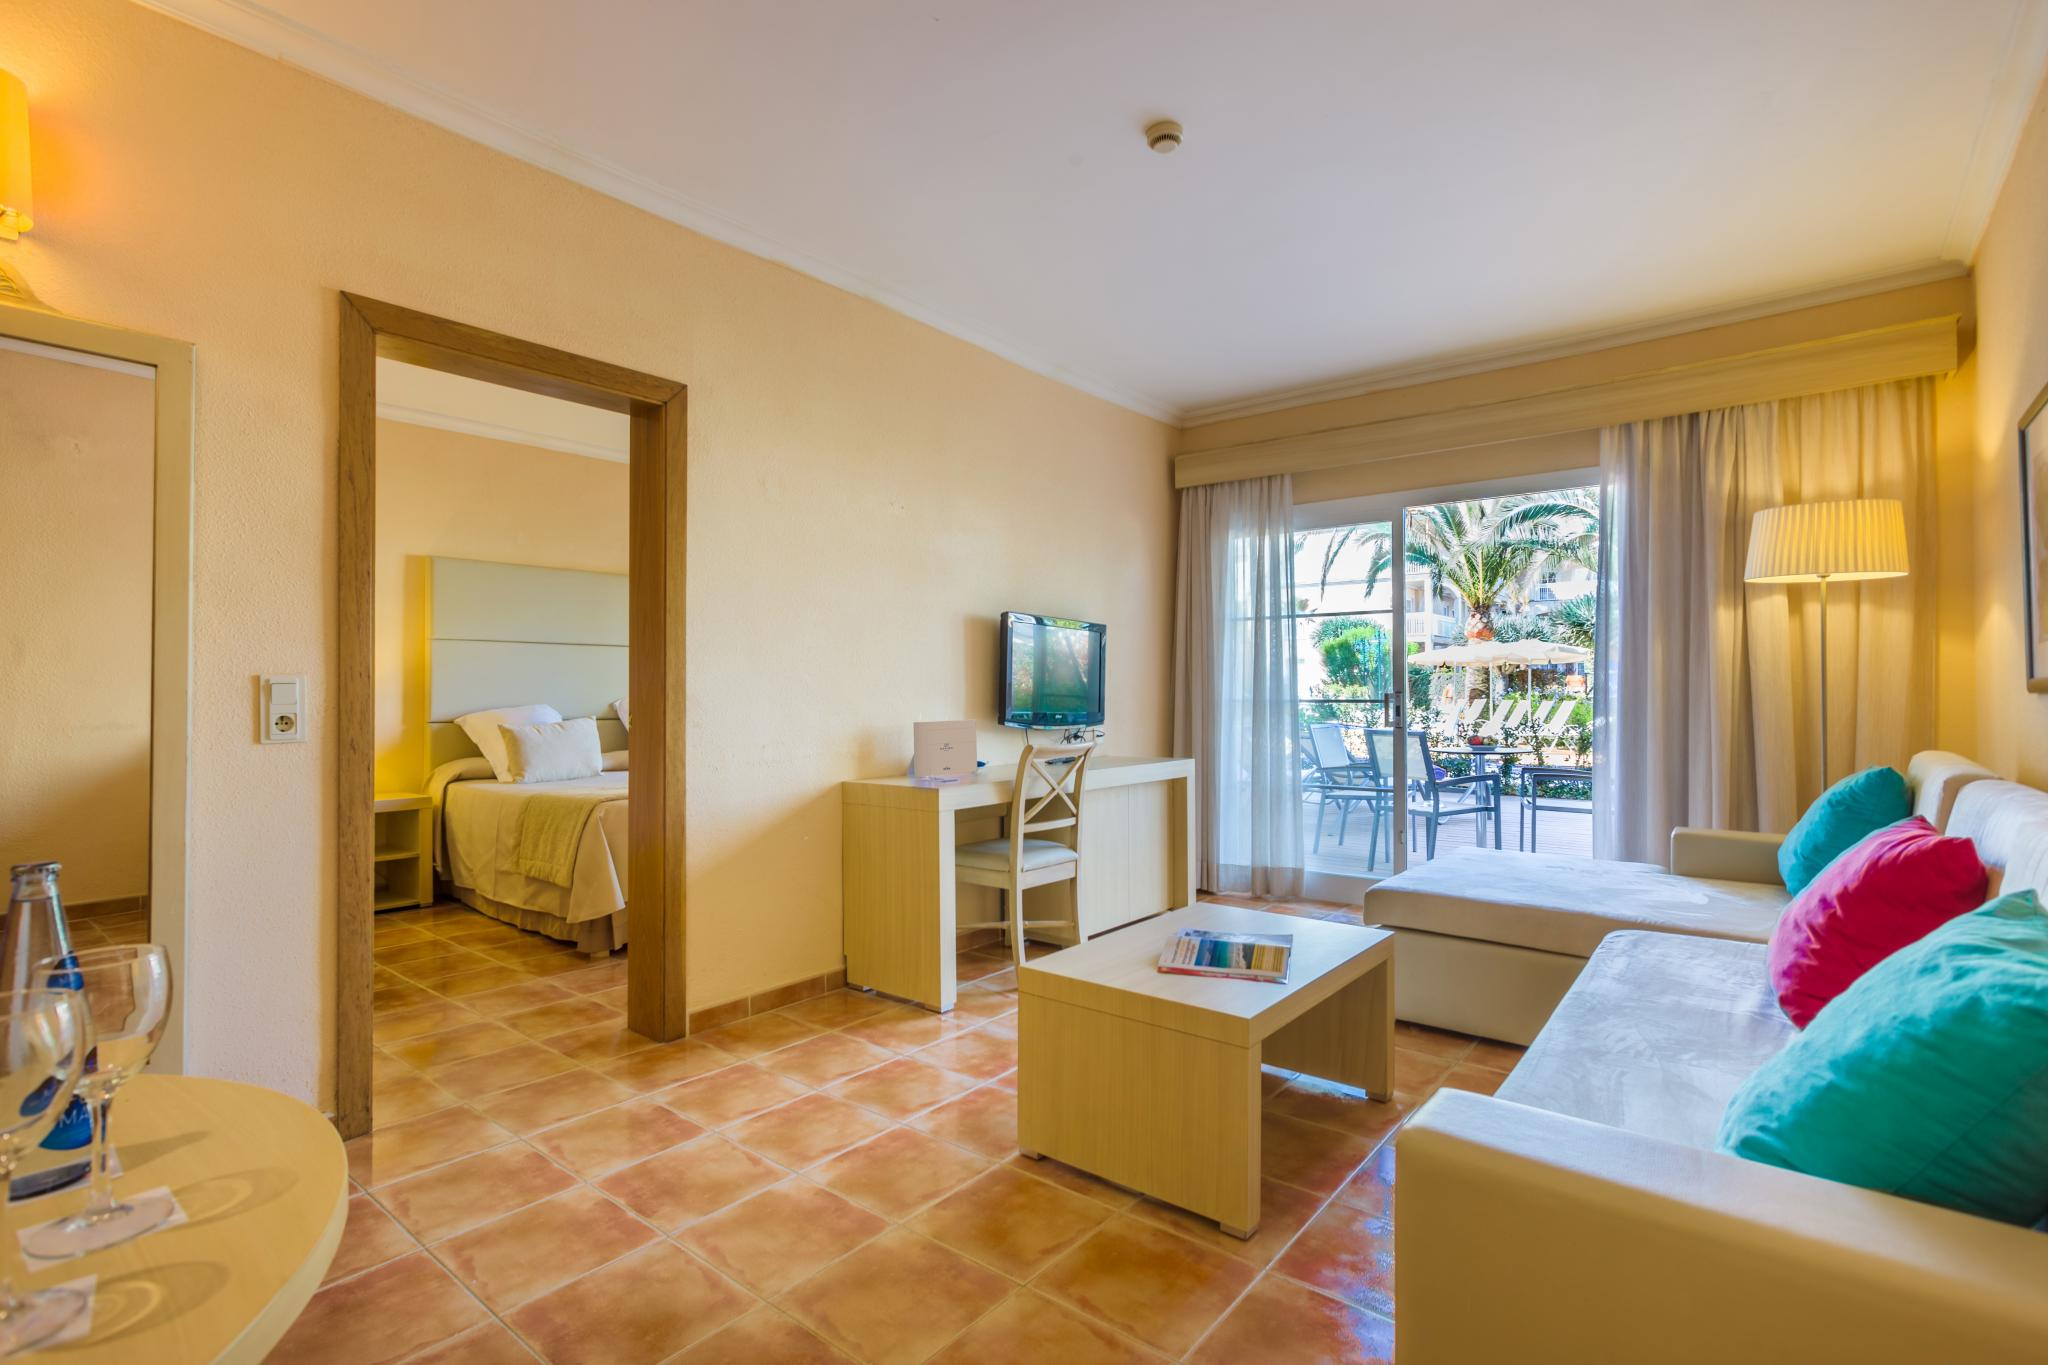 Rooms Hotel Zafiro Can Picafort Photos And Features